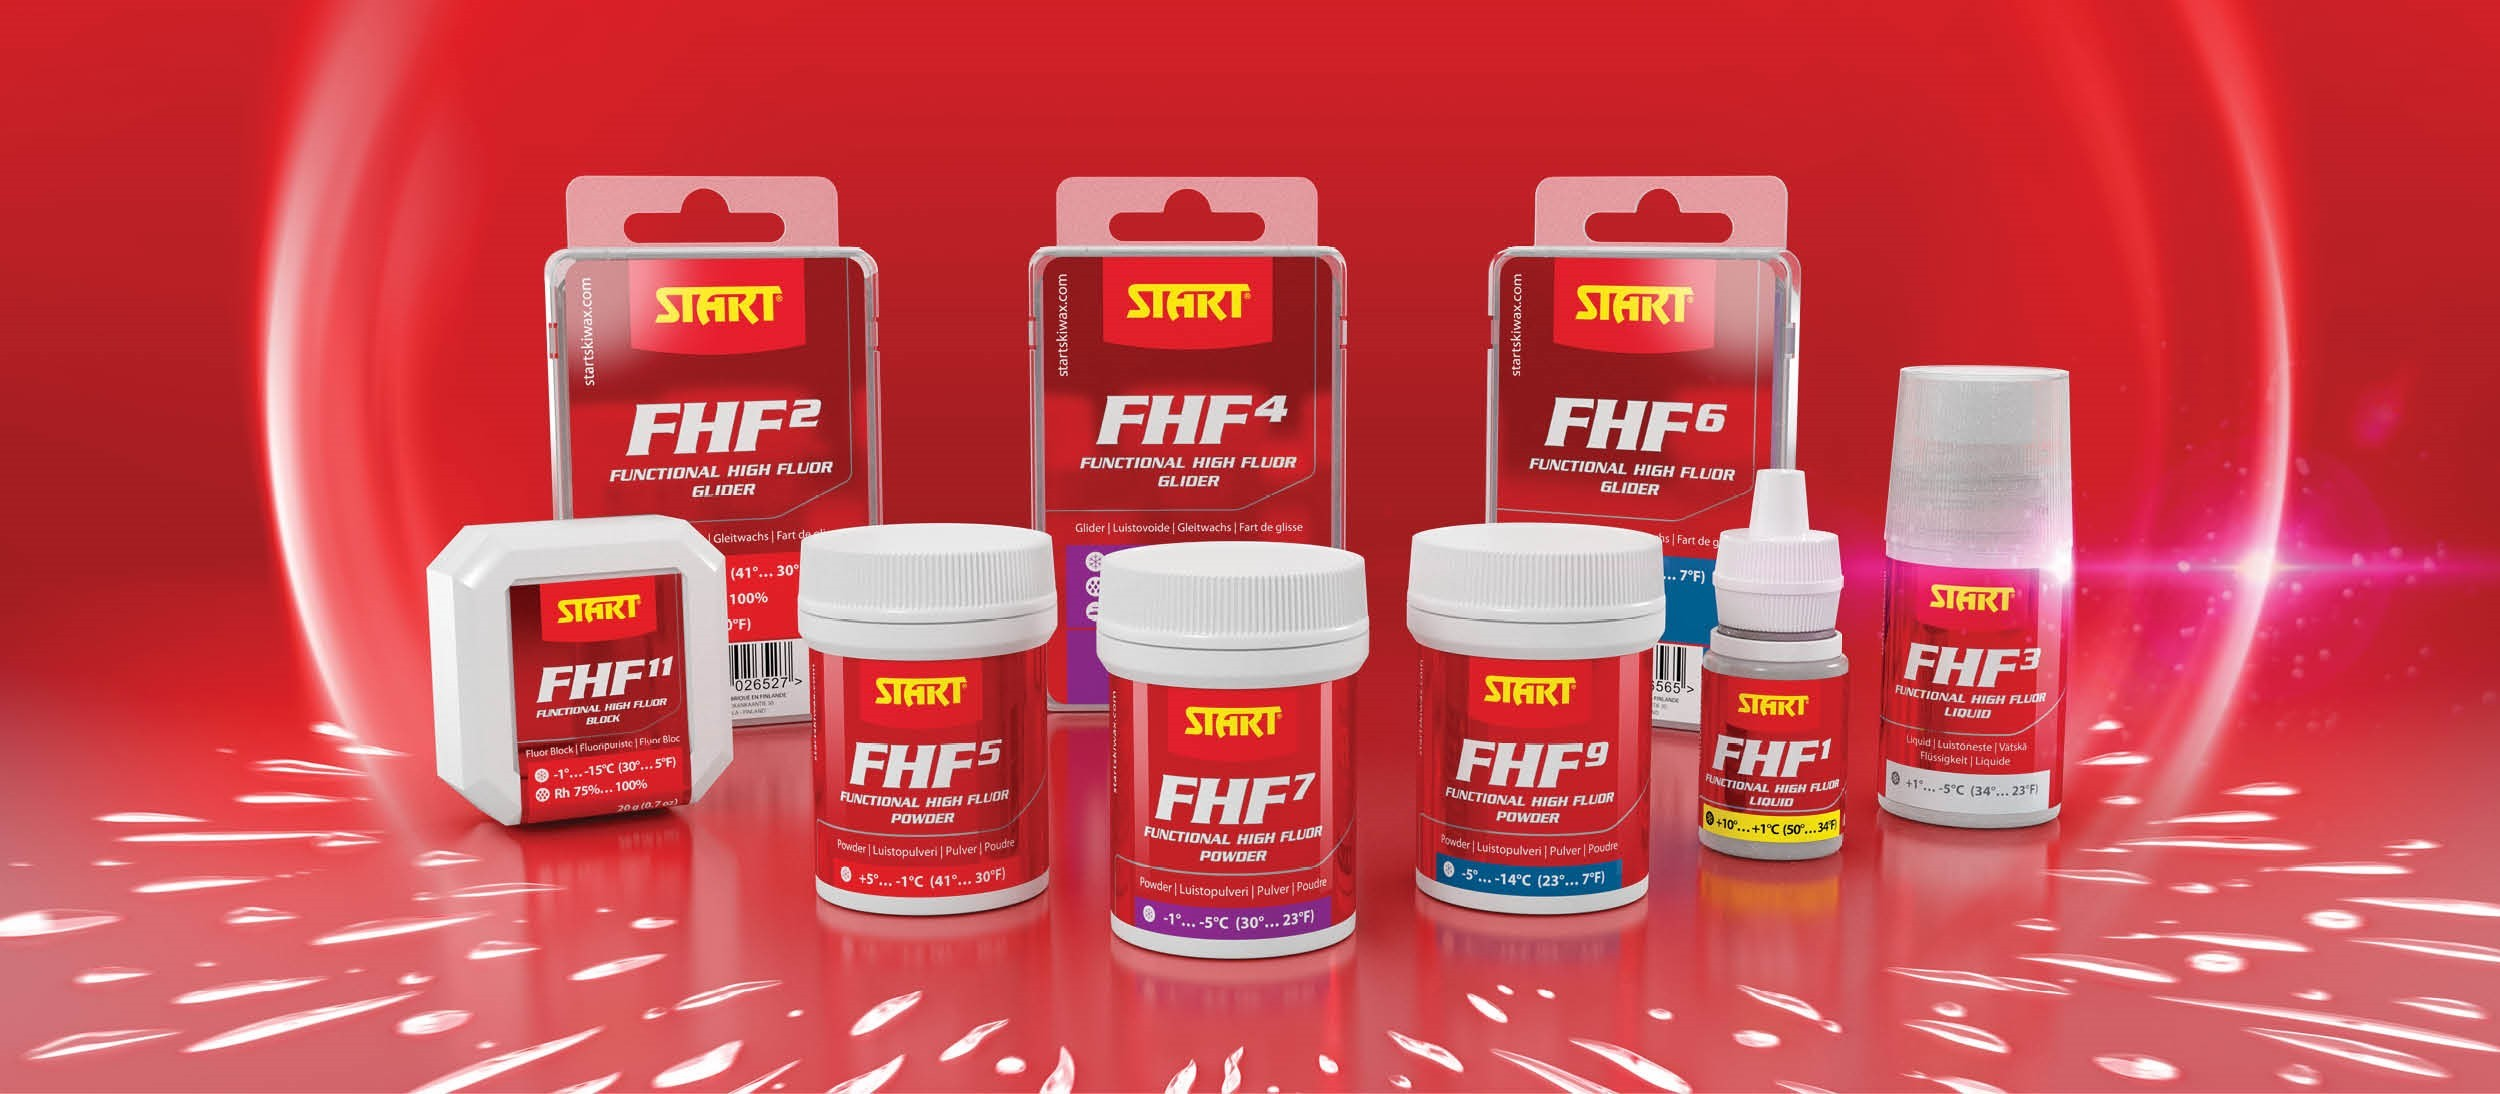 FHF High Flour